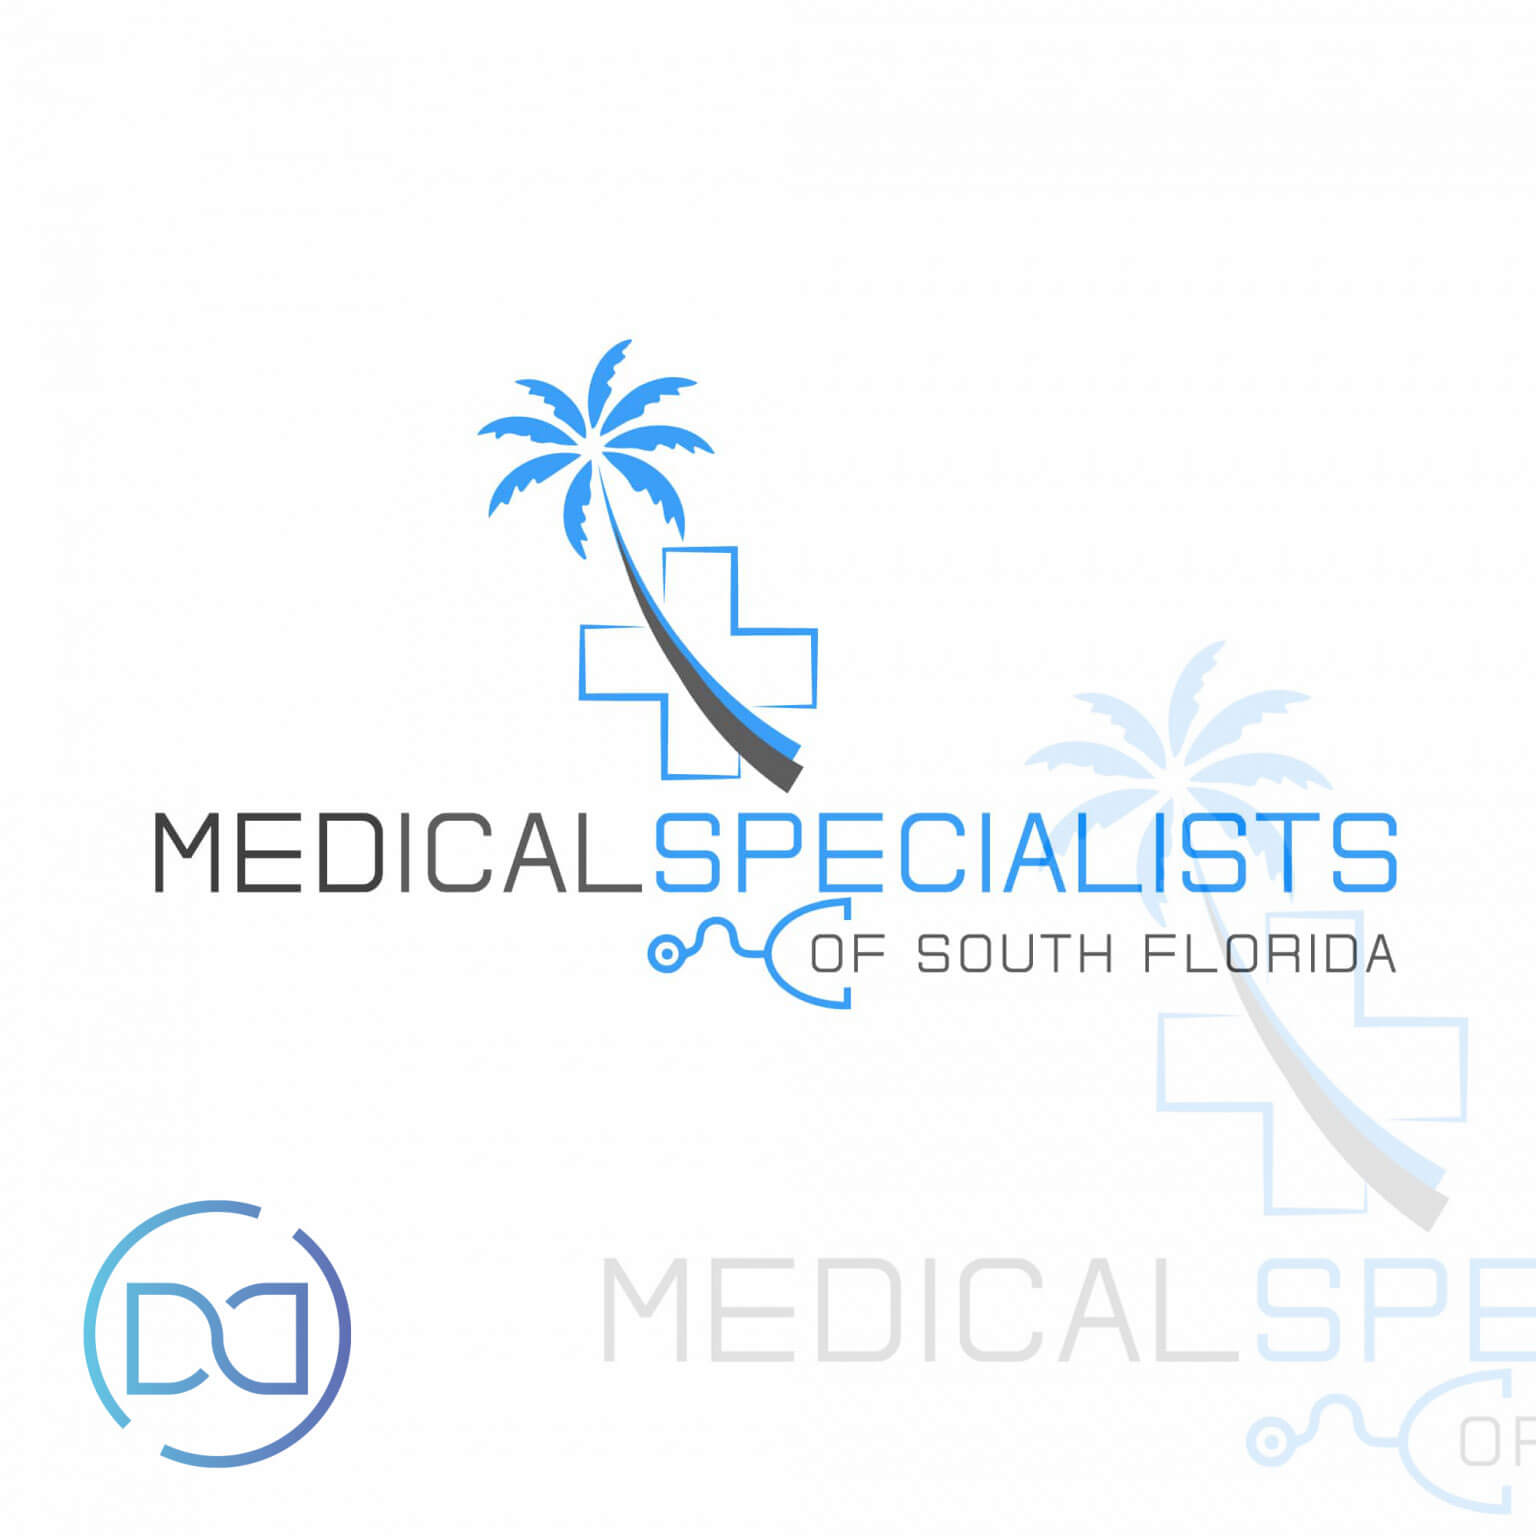 DD-Designs-Mediacal Specialists